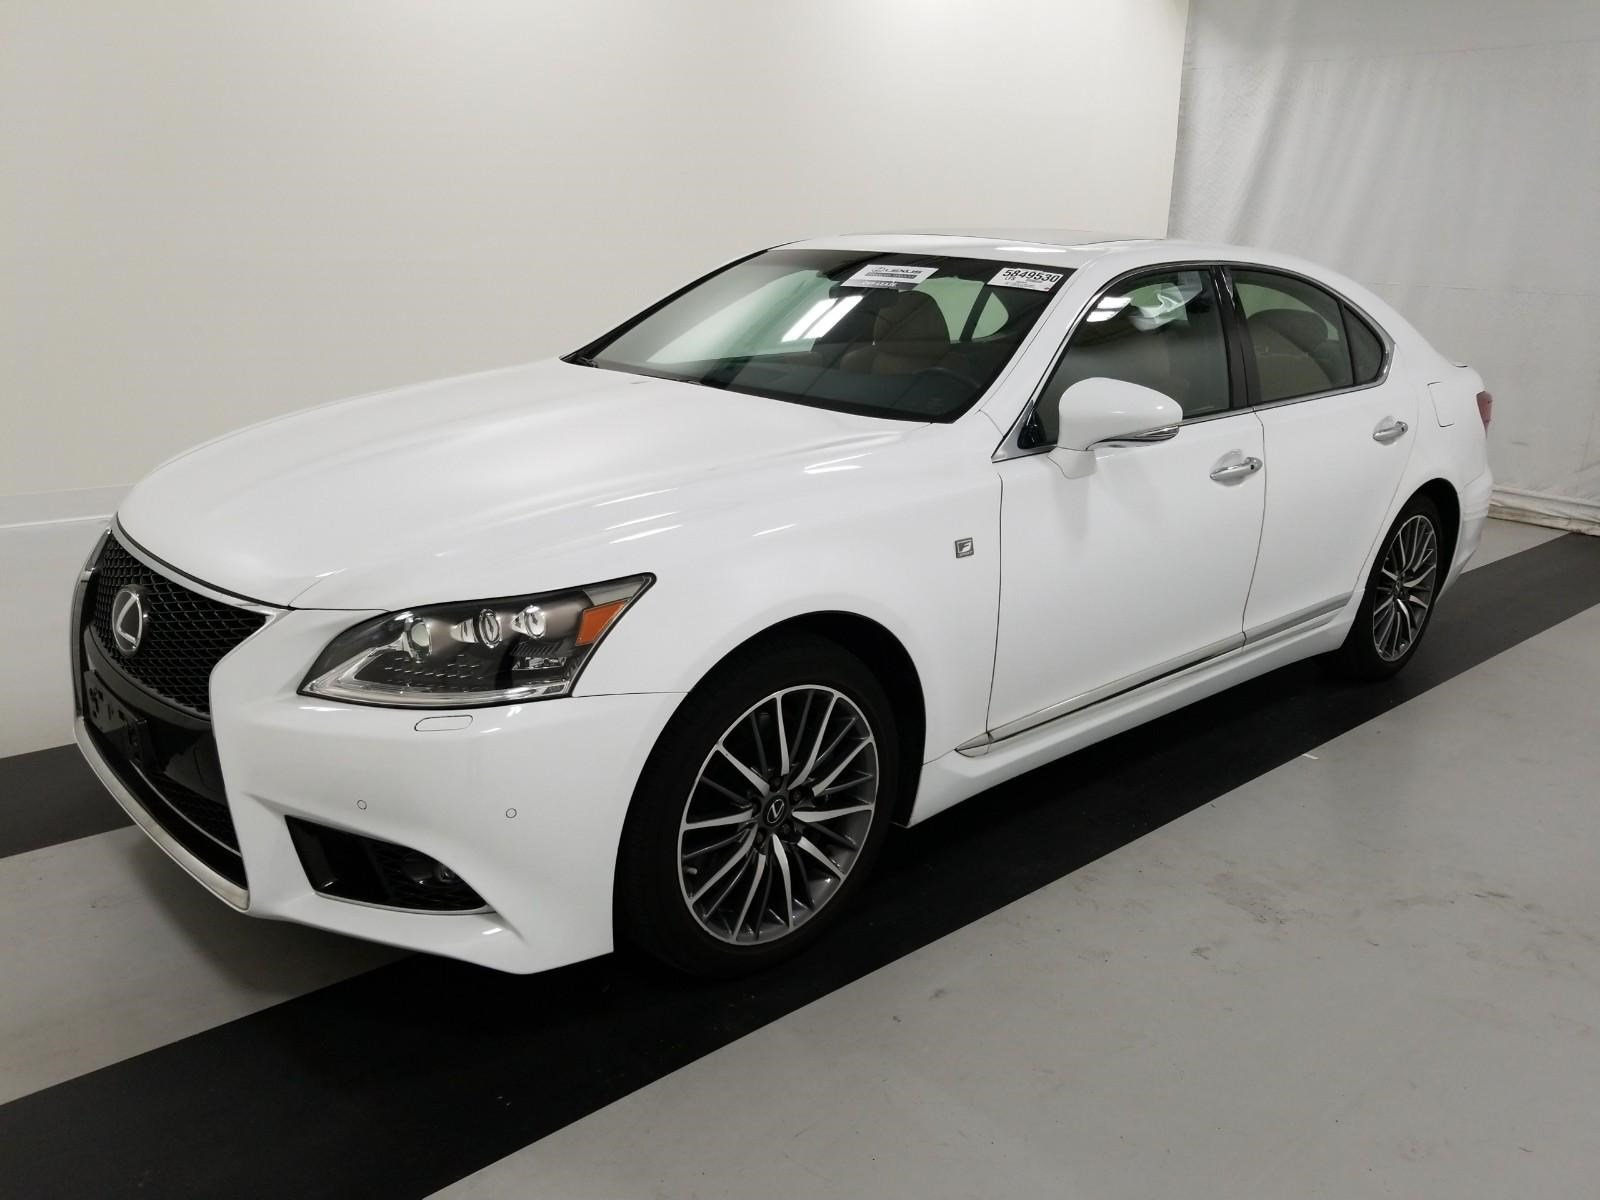 3942c69e680c37116f6935ce8c423cd0 Interesting Info About Lexus Dealers In Delaware